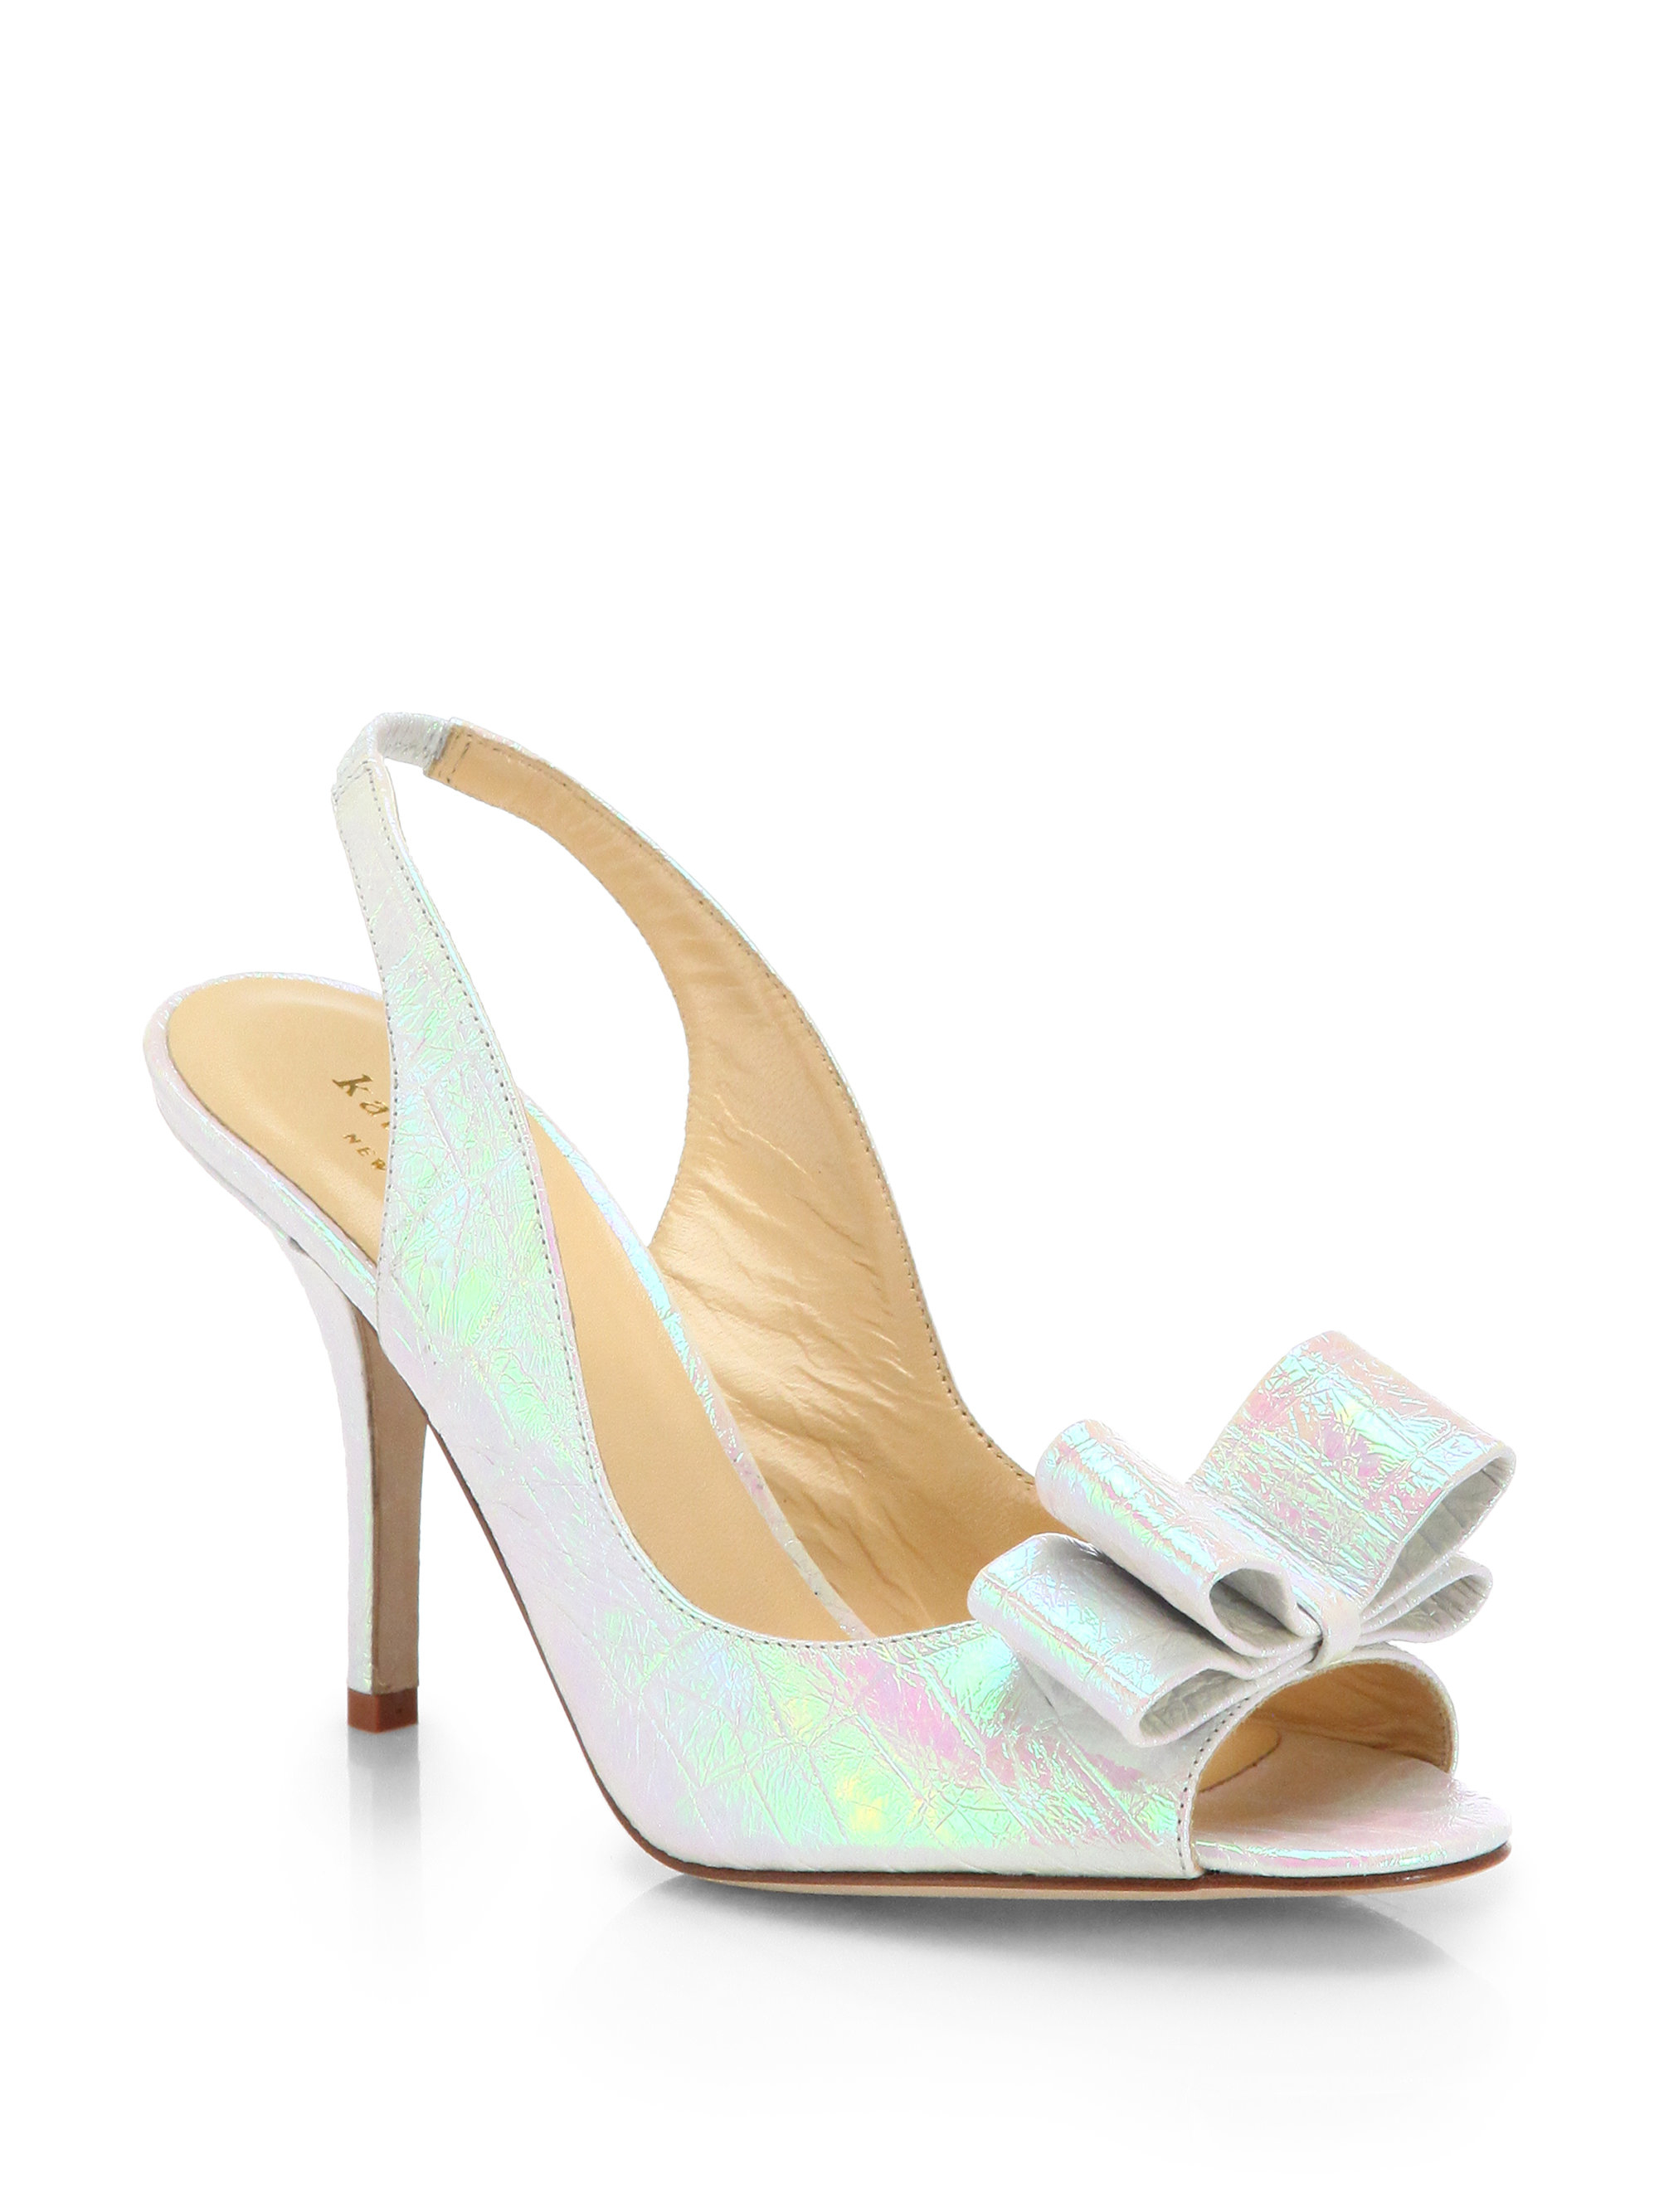 Kate Spade Charm Shoes Review